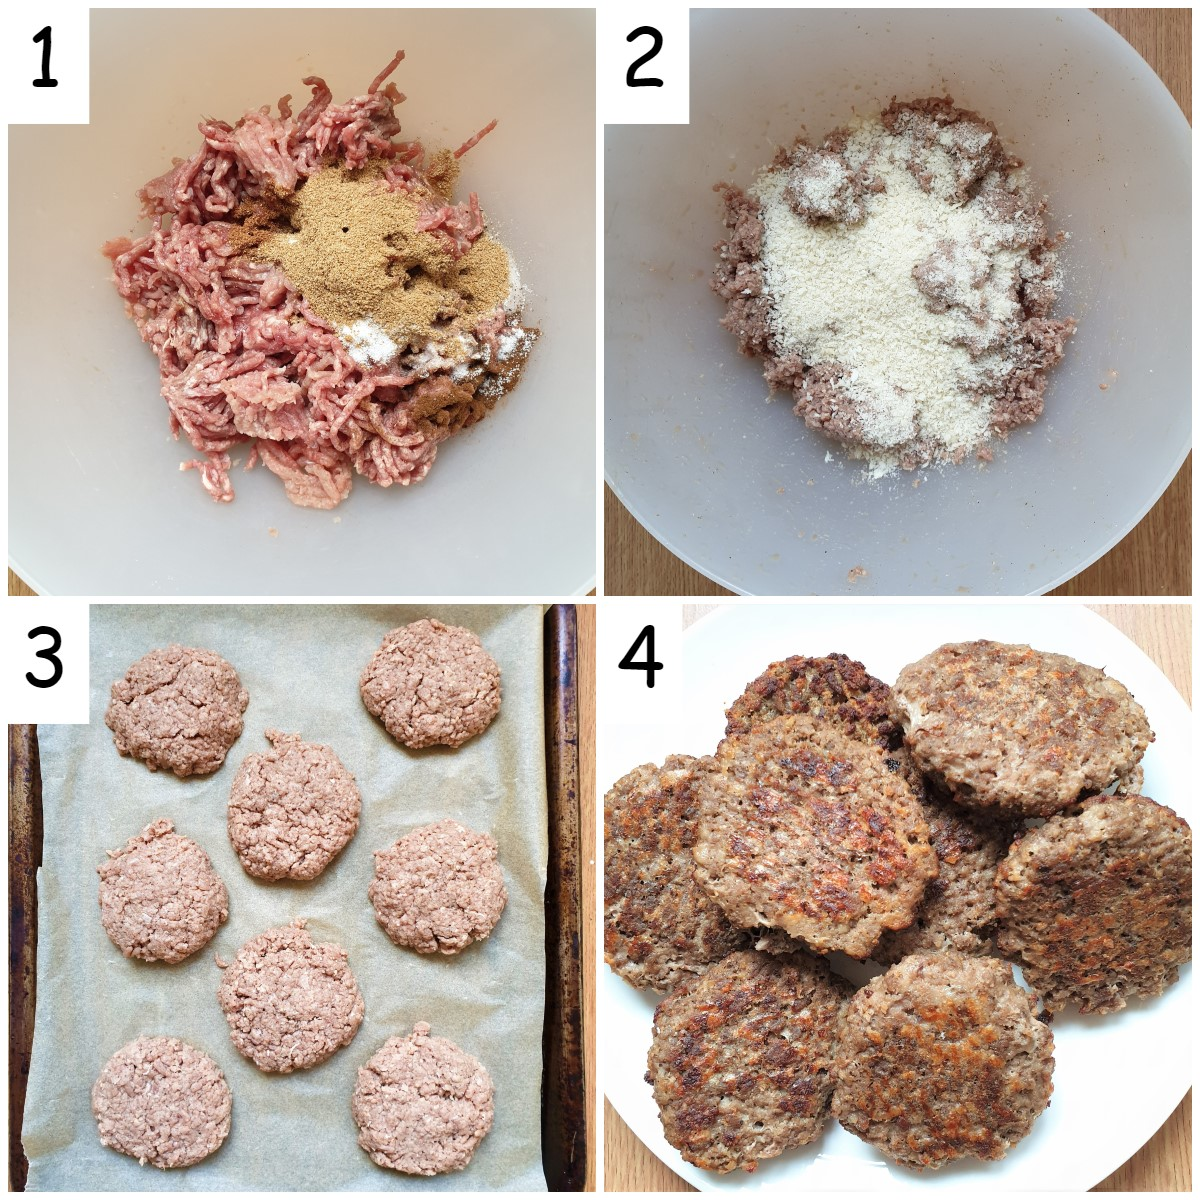 Collage of 4 images showing steps for mixing and forming boerewors patties.